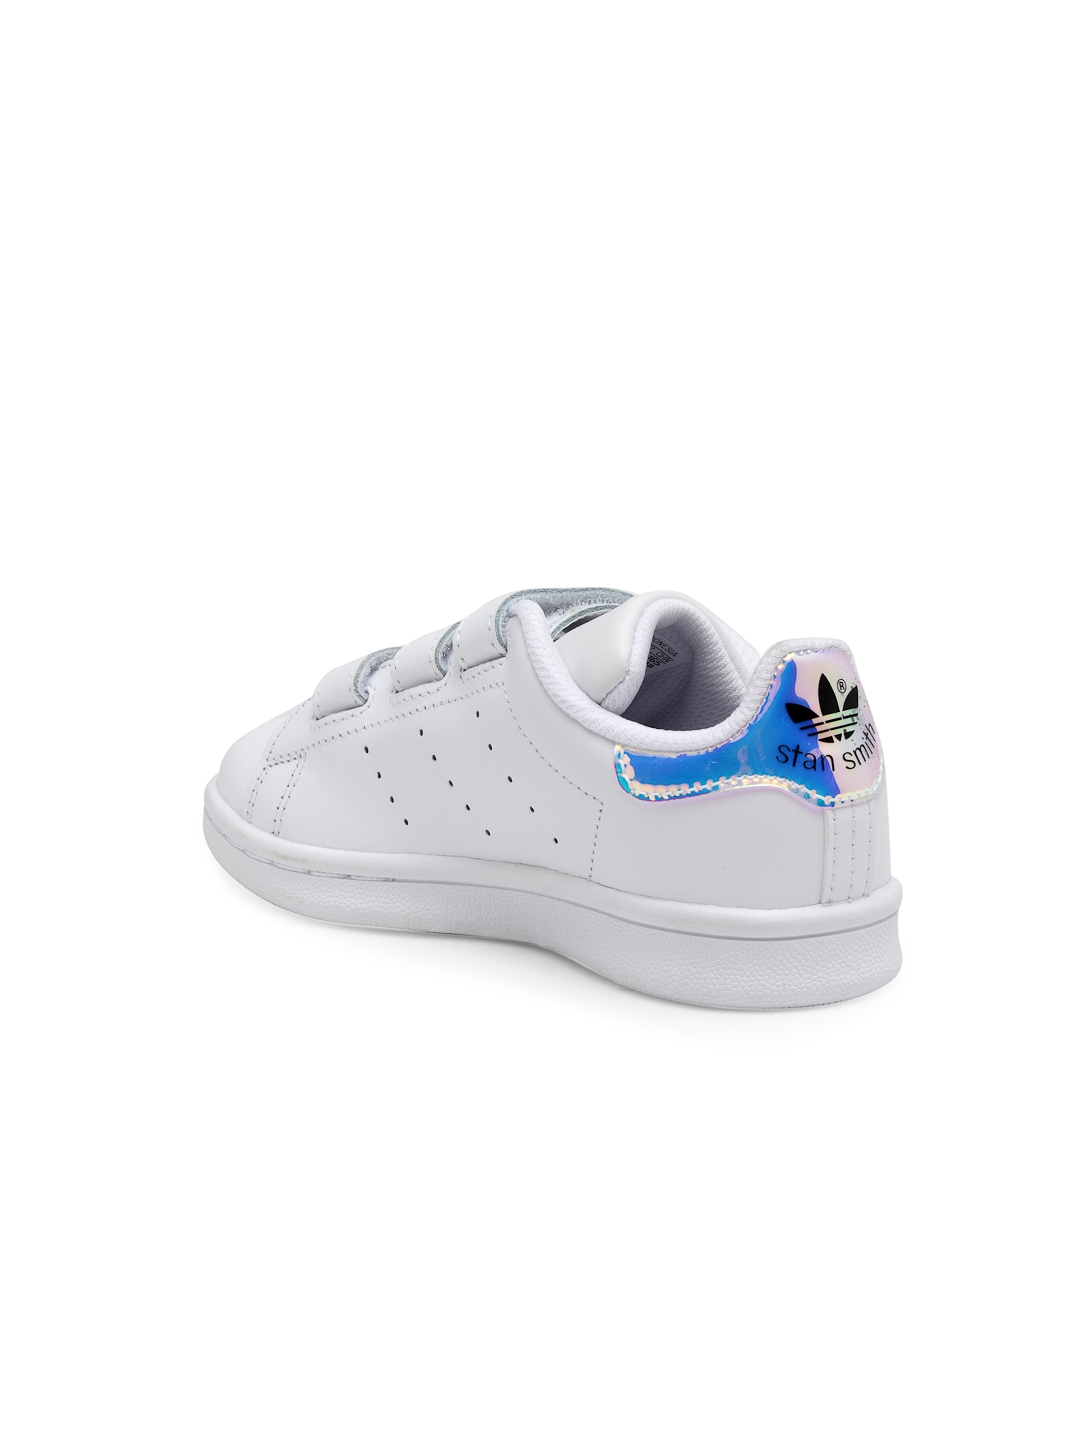 new product d67be 5ff79 ADIDAS Originals Kids White Stan Smith Cloudfoam C Sneakers